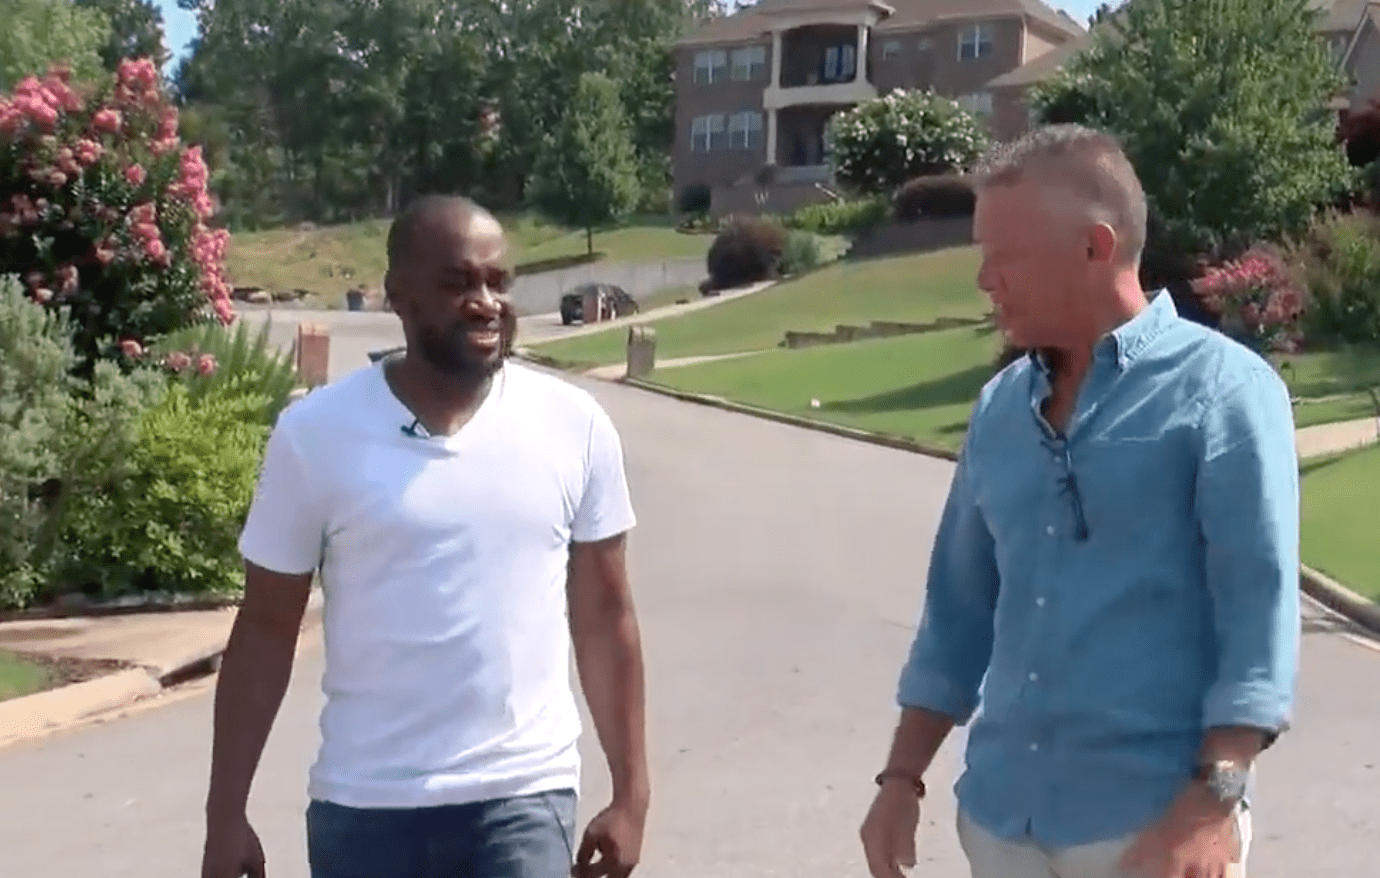 Neighbor details where he found a man lying on the ground before he started with chest compressions | Photo: Youtube/FOX 16 KLRT